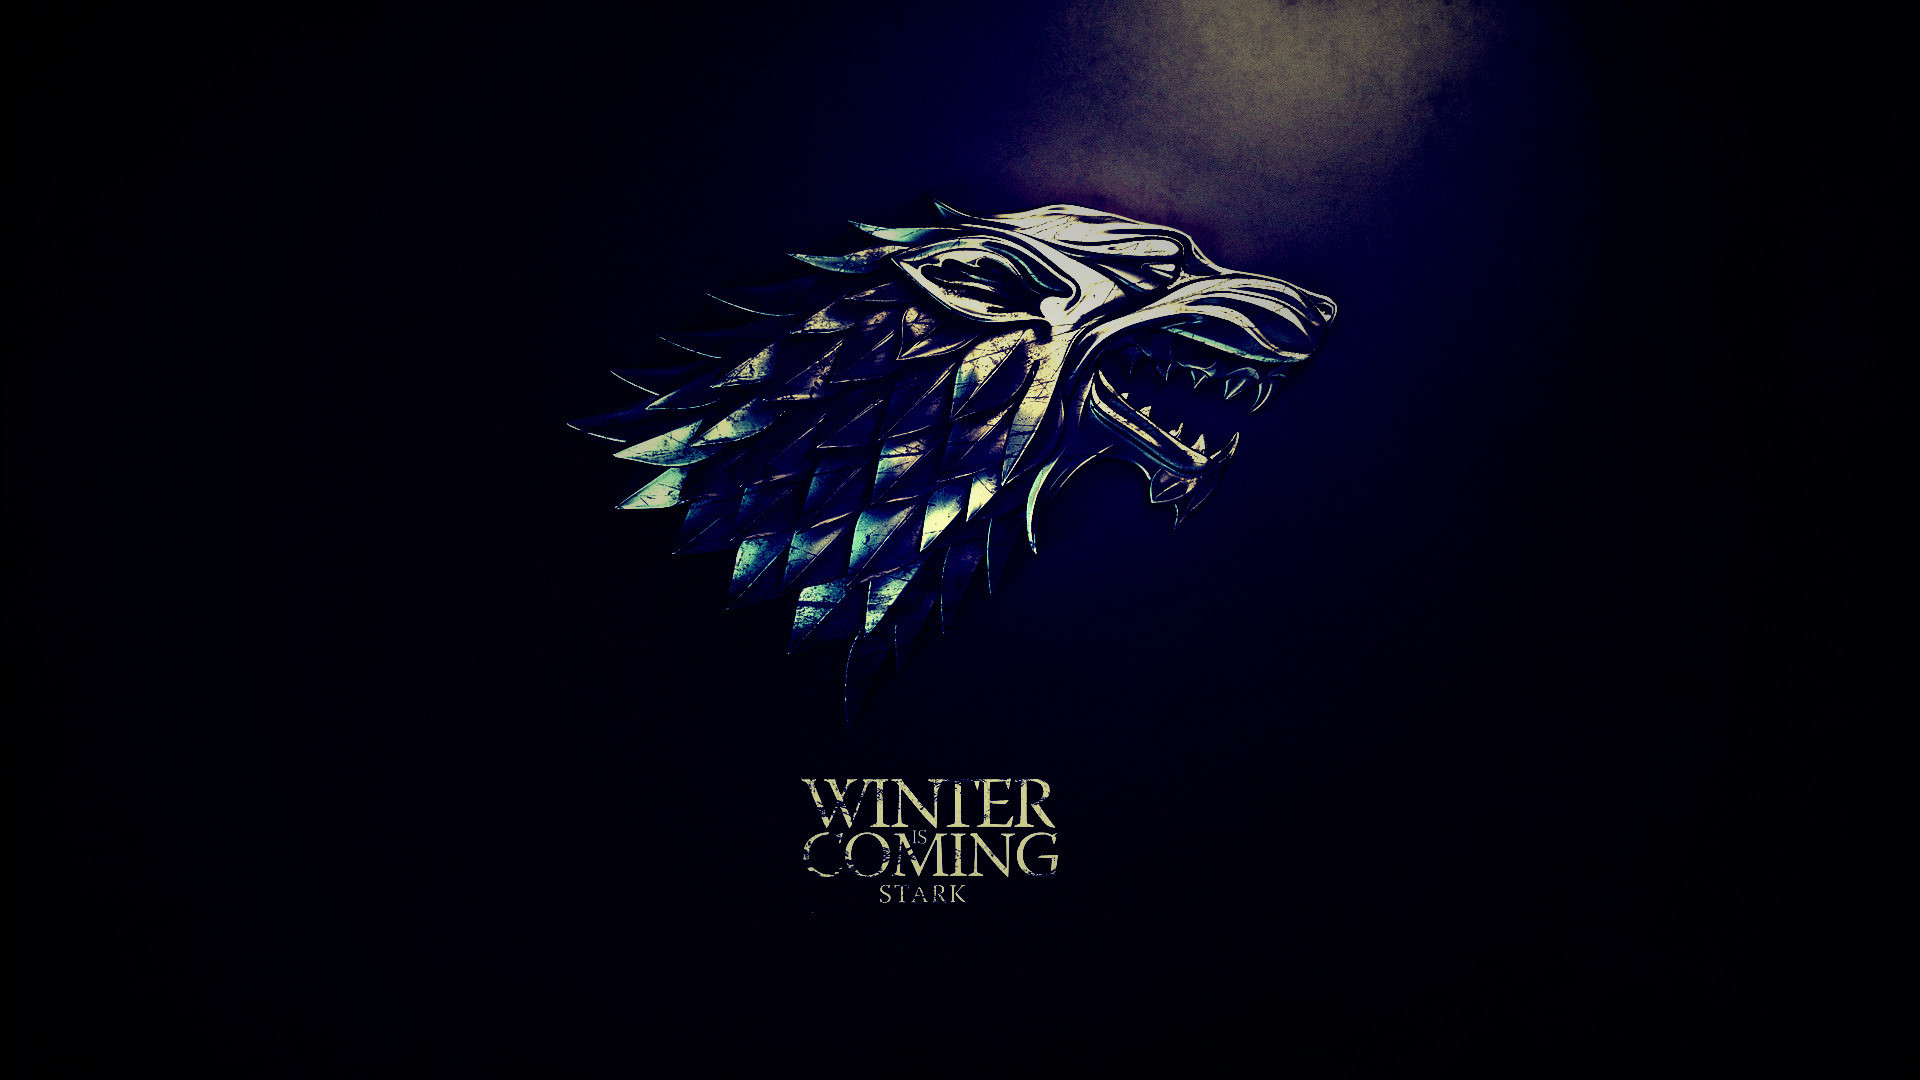 1920x1080 Game Of Thrones Winter Is Coming Stark (72 Wallpapers)